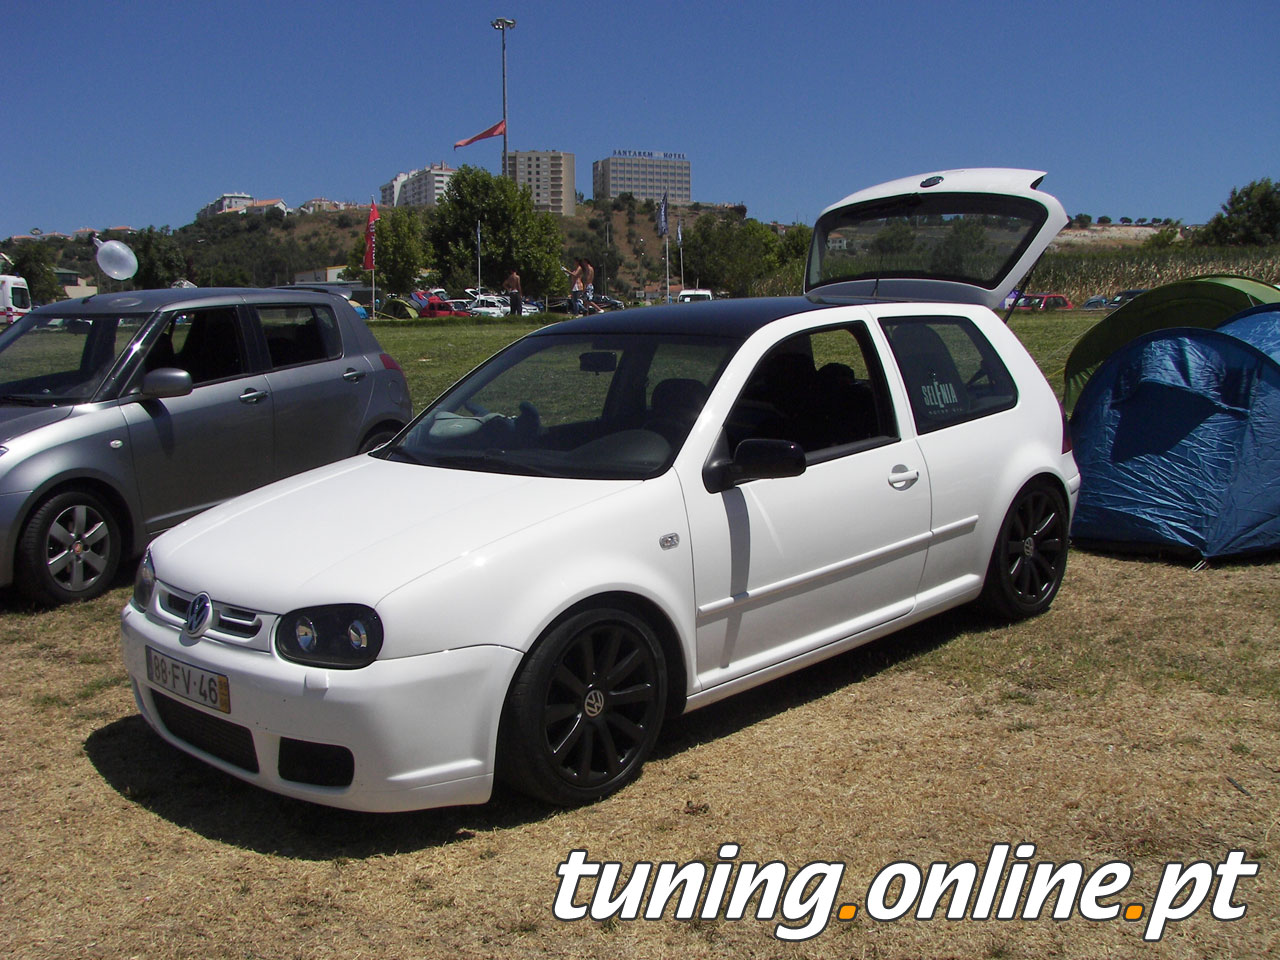 fotografia de vw golf iv tuning online. Black Bedroom Furniture Sets. Home Design Ideas